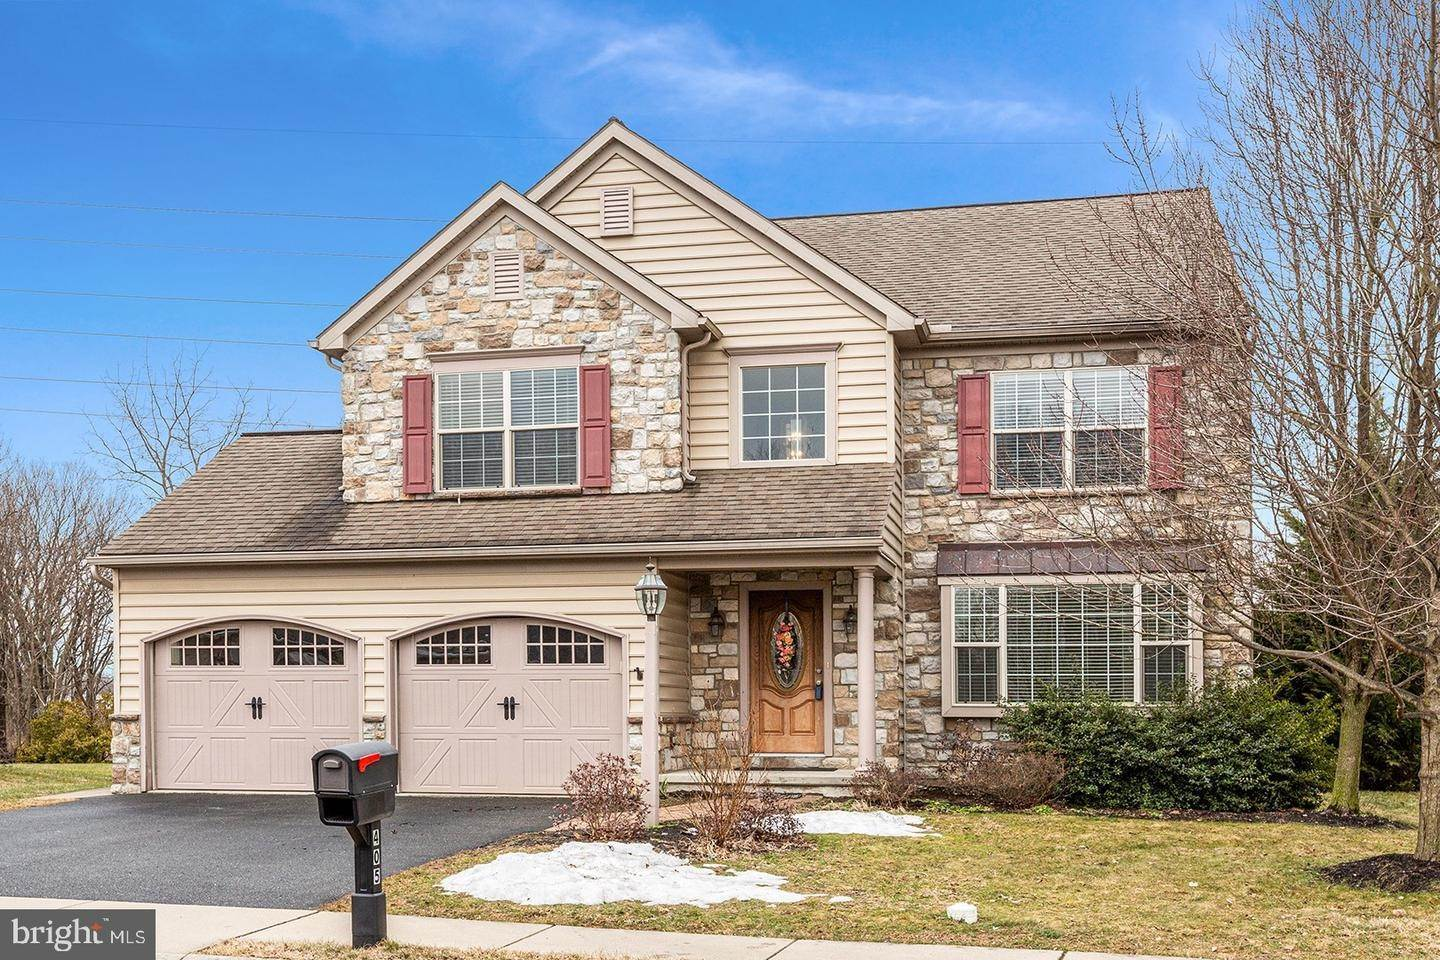 Residential for Sale at 405 BARBARA Street Landisville, Pennsylvania 17538 United States